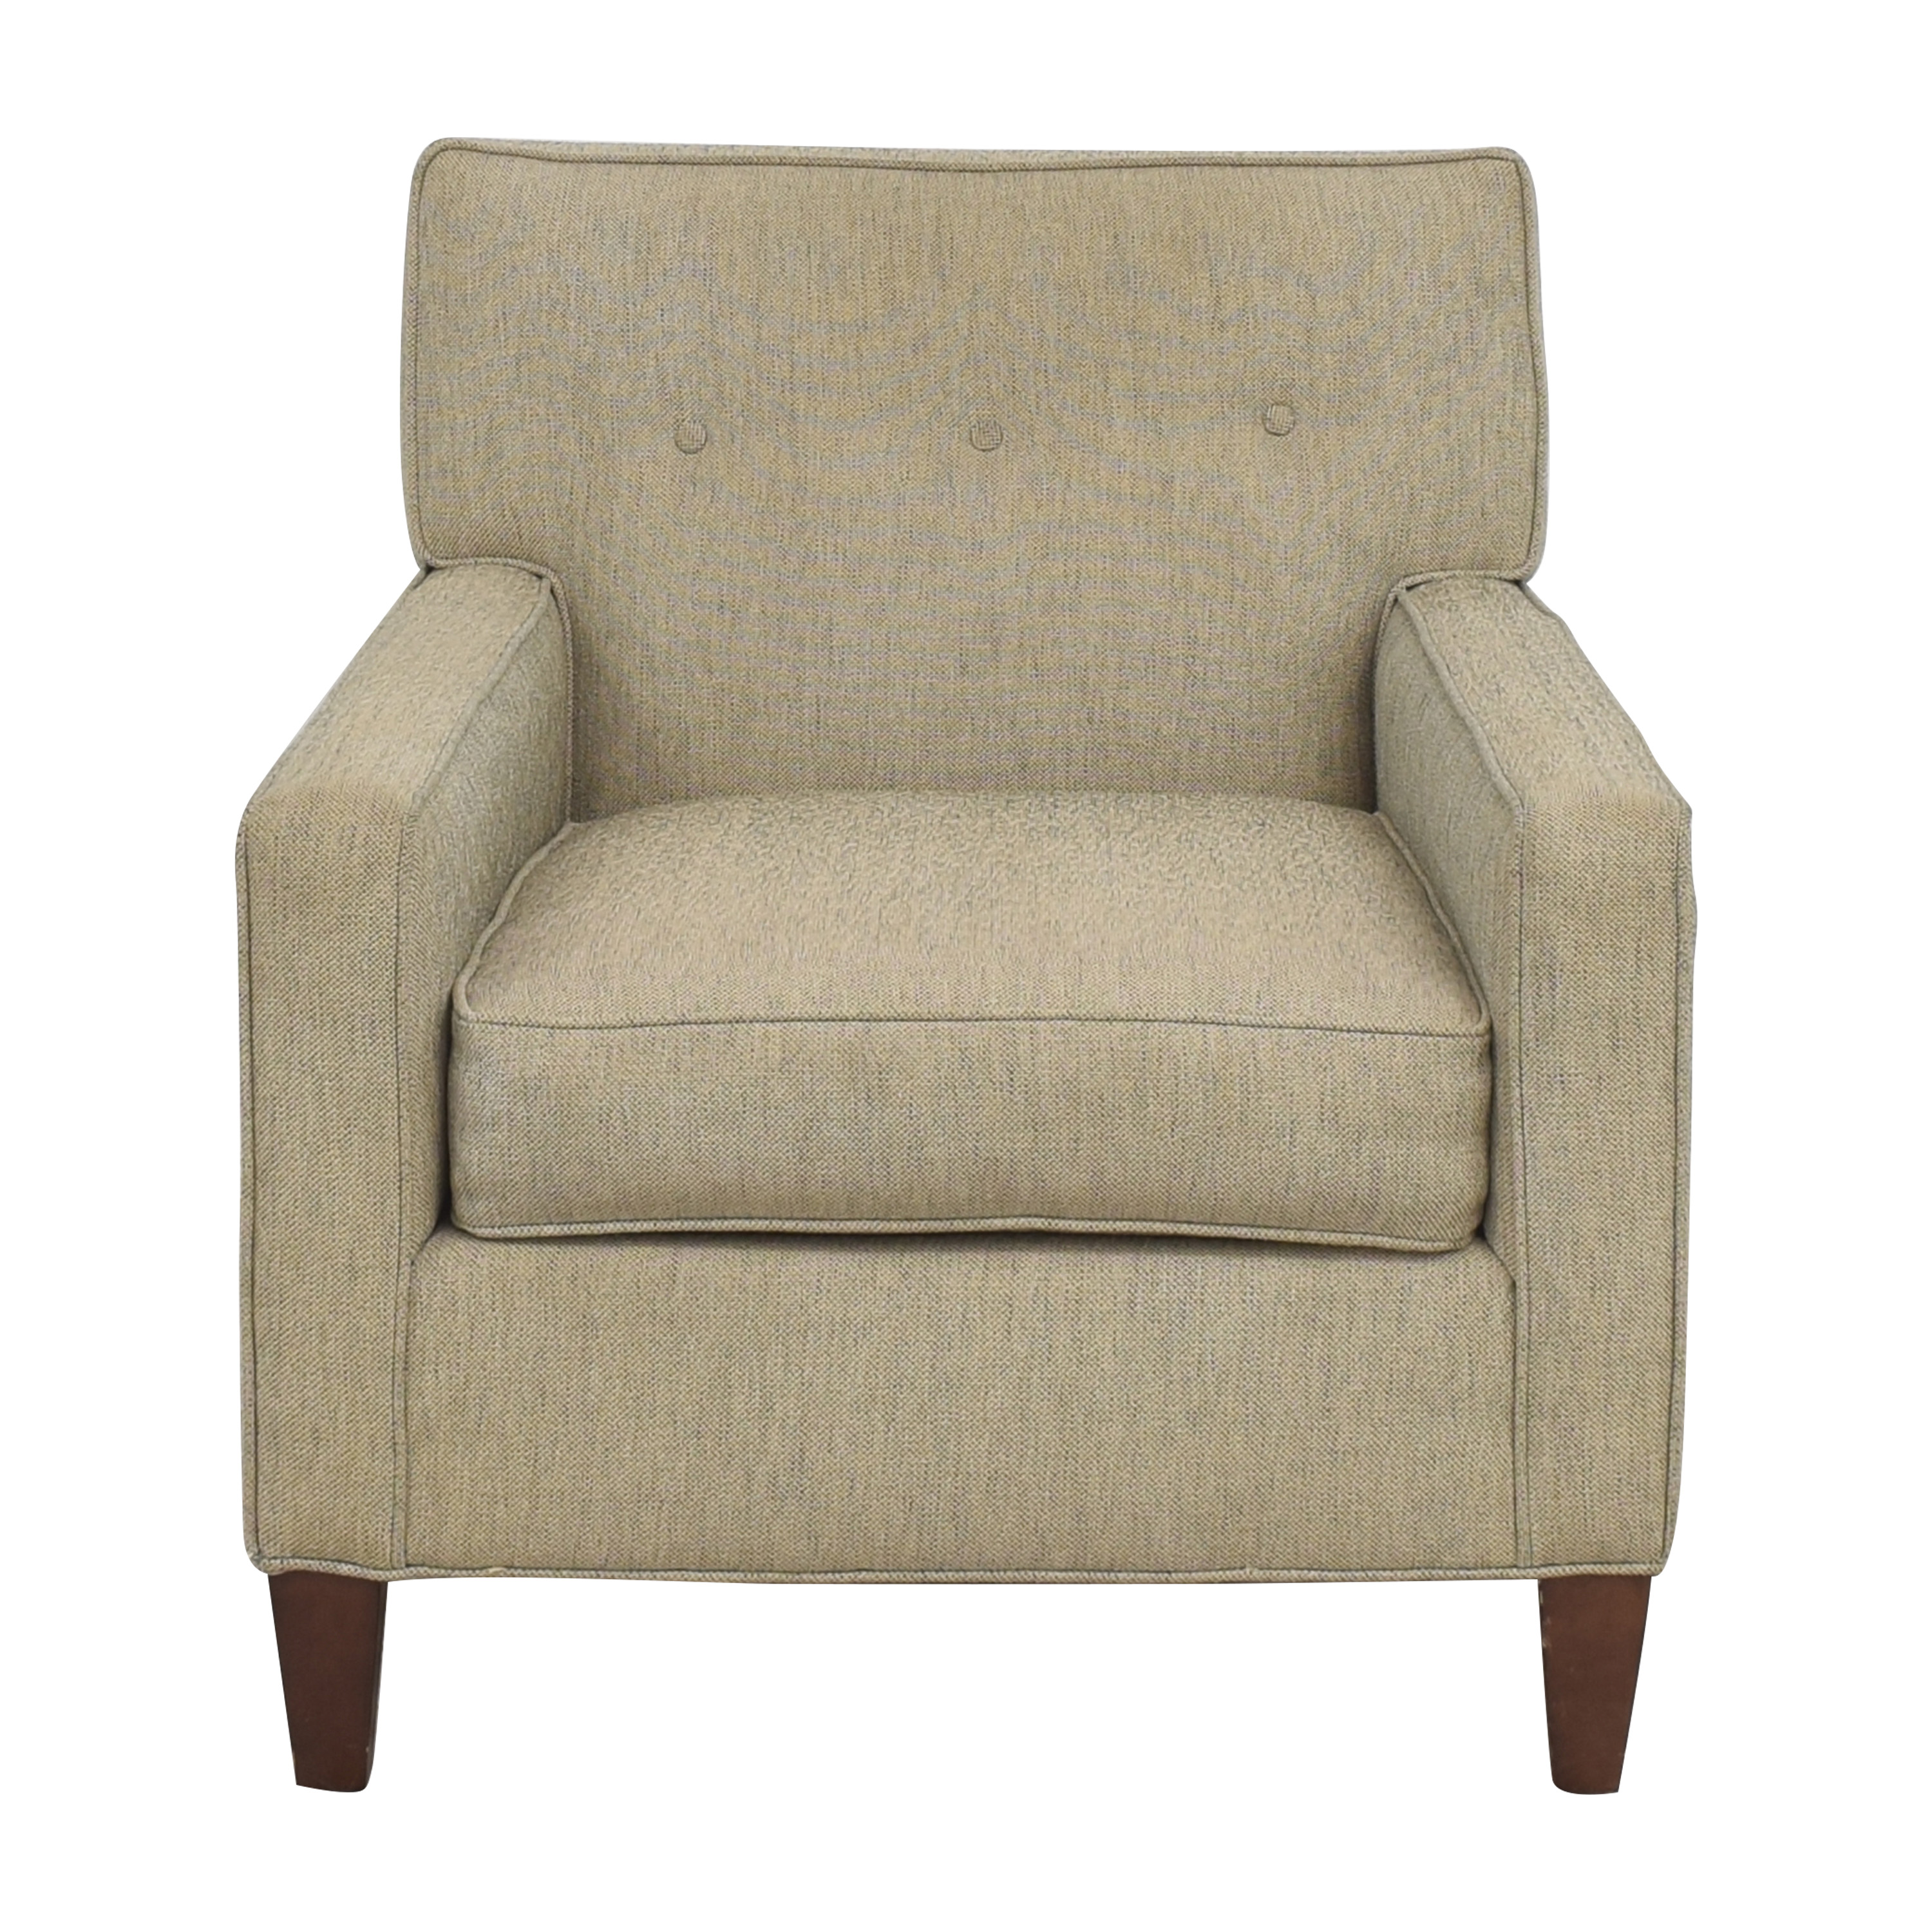 Mitchell Gold + Bob Williams Mitchell Gold + Bob Williams Dexter Chair for sale